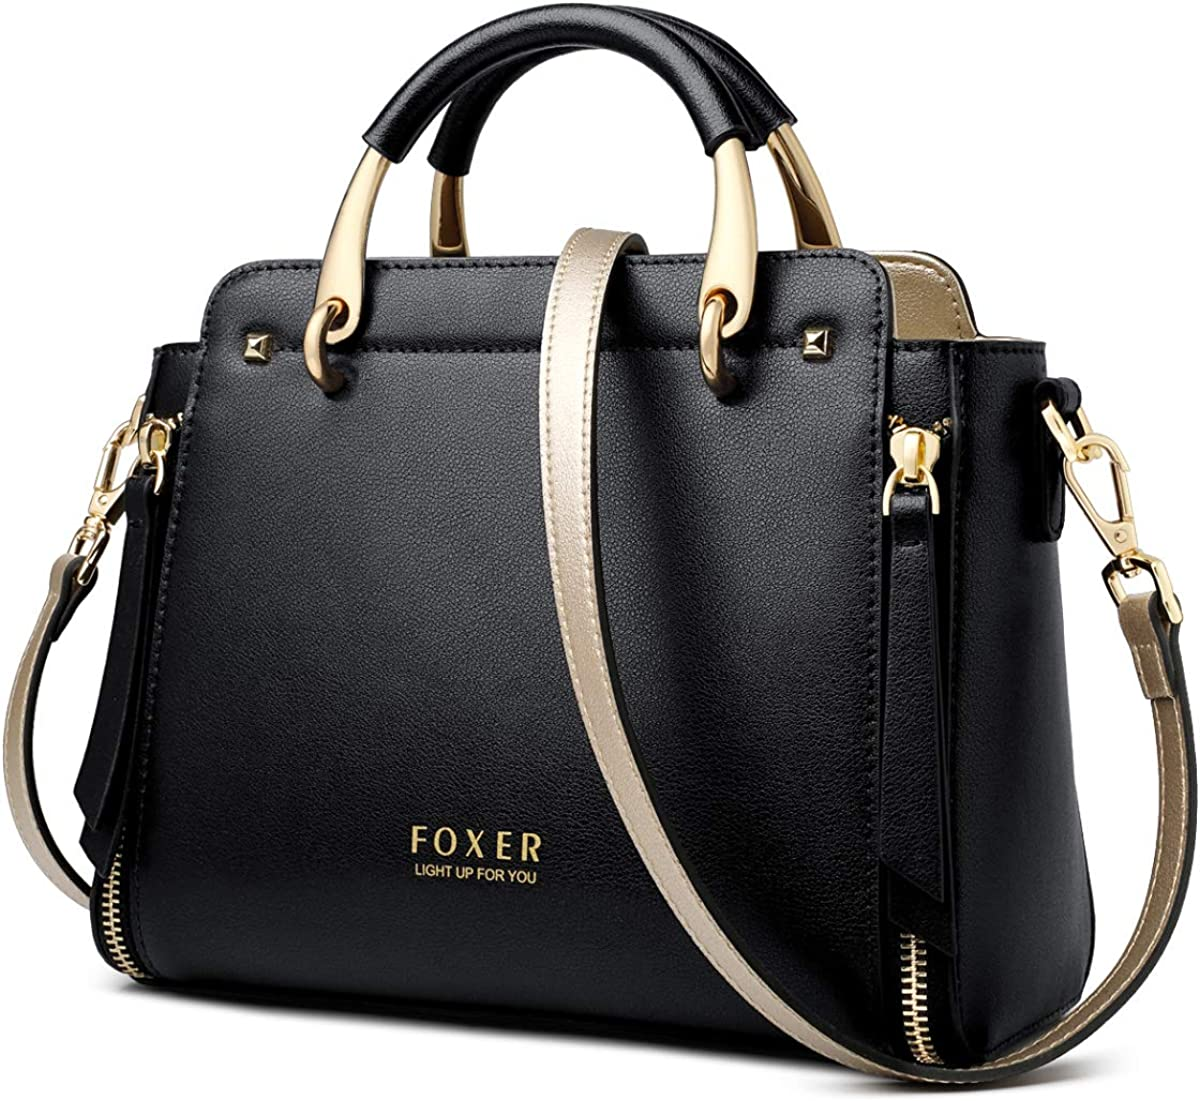 Genuine Leather Handbags for Women, Ladies Top-handle Bags with Adjustable Strap